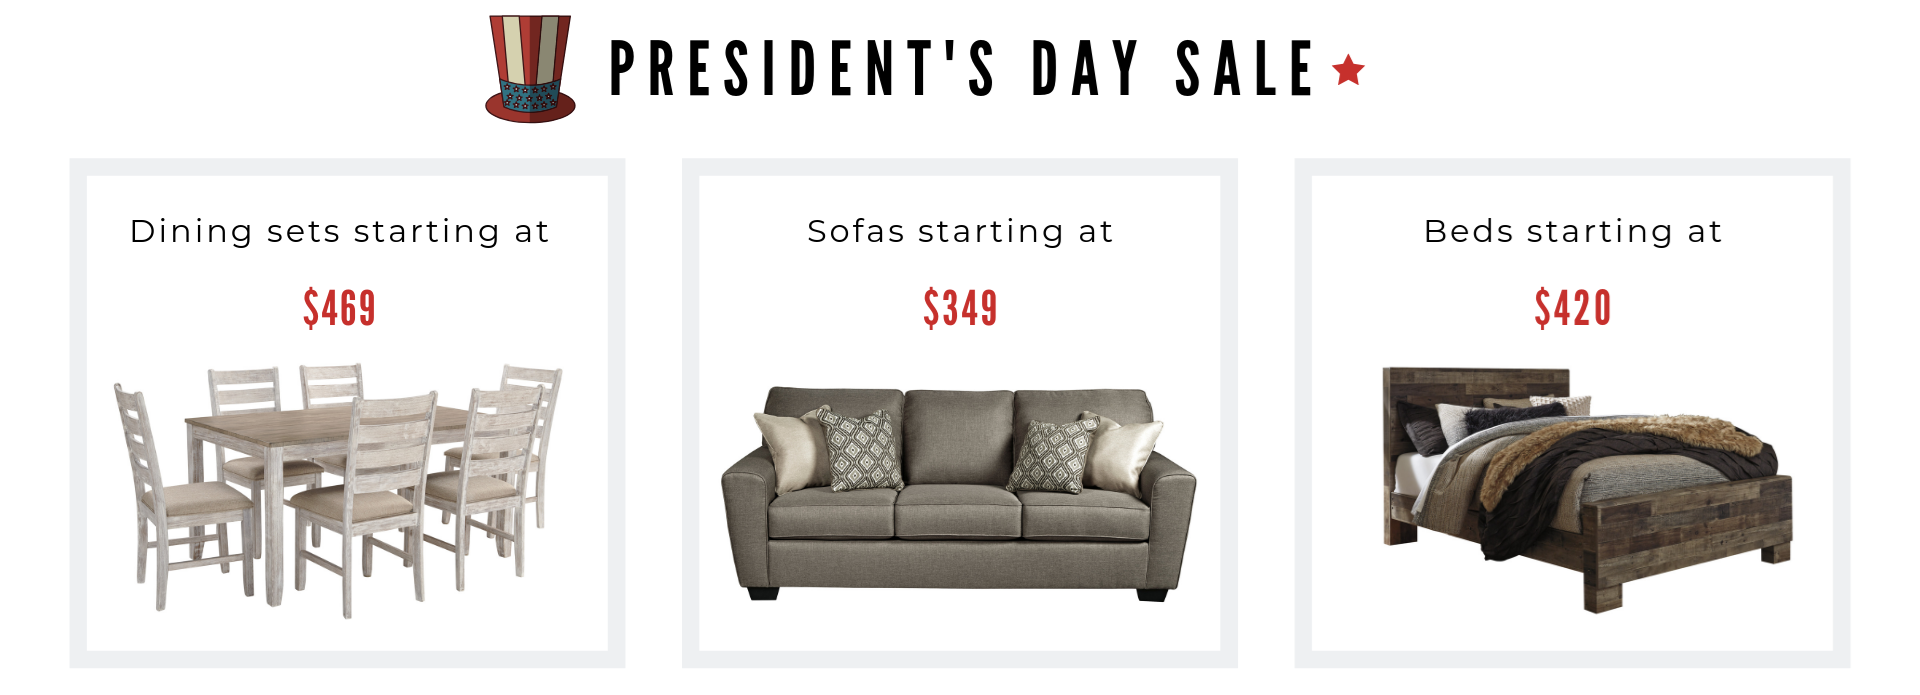 Presidents day sale image